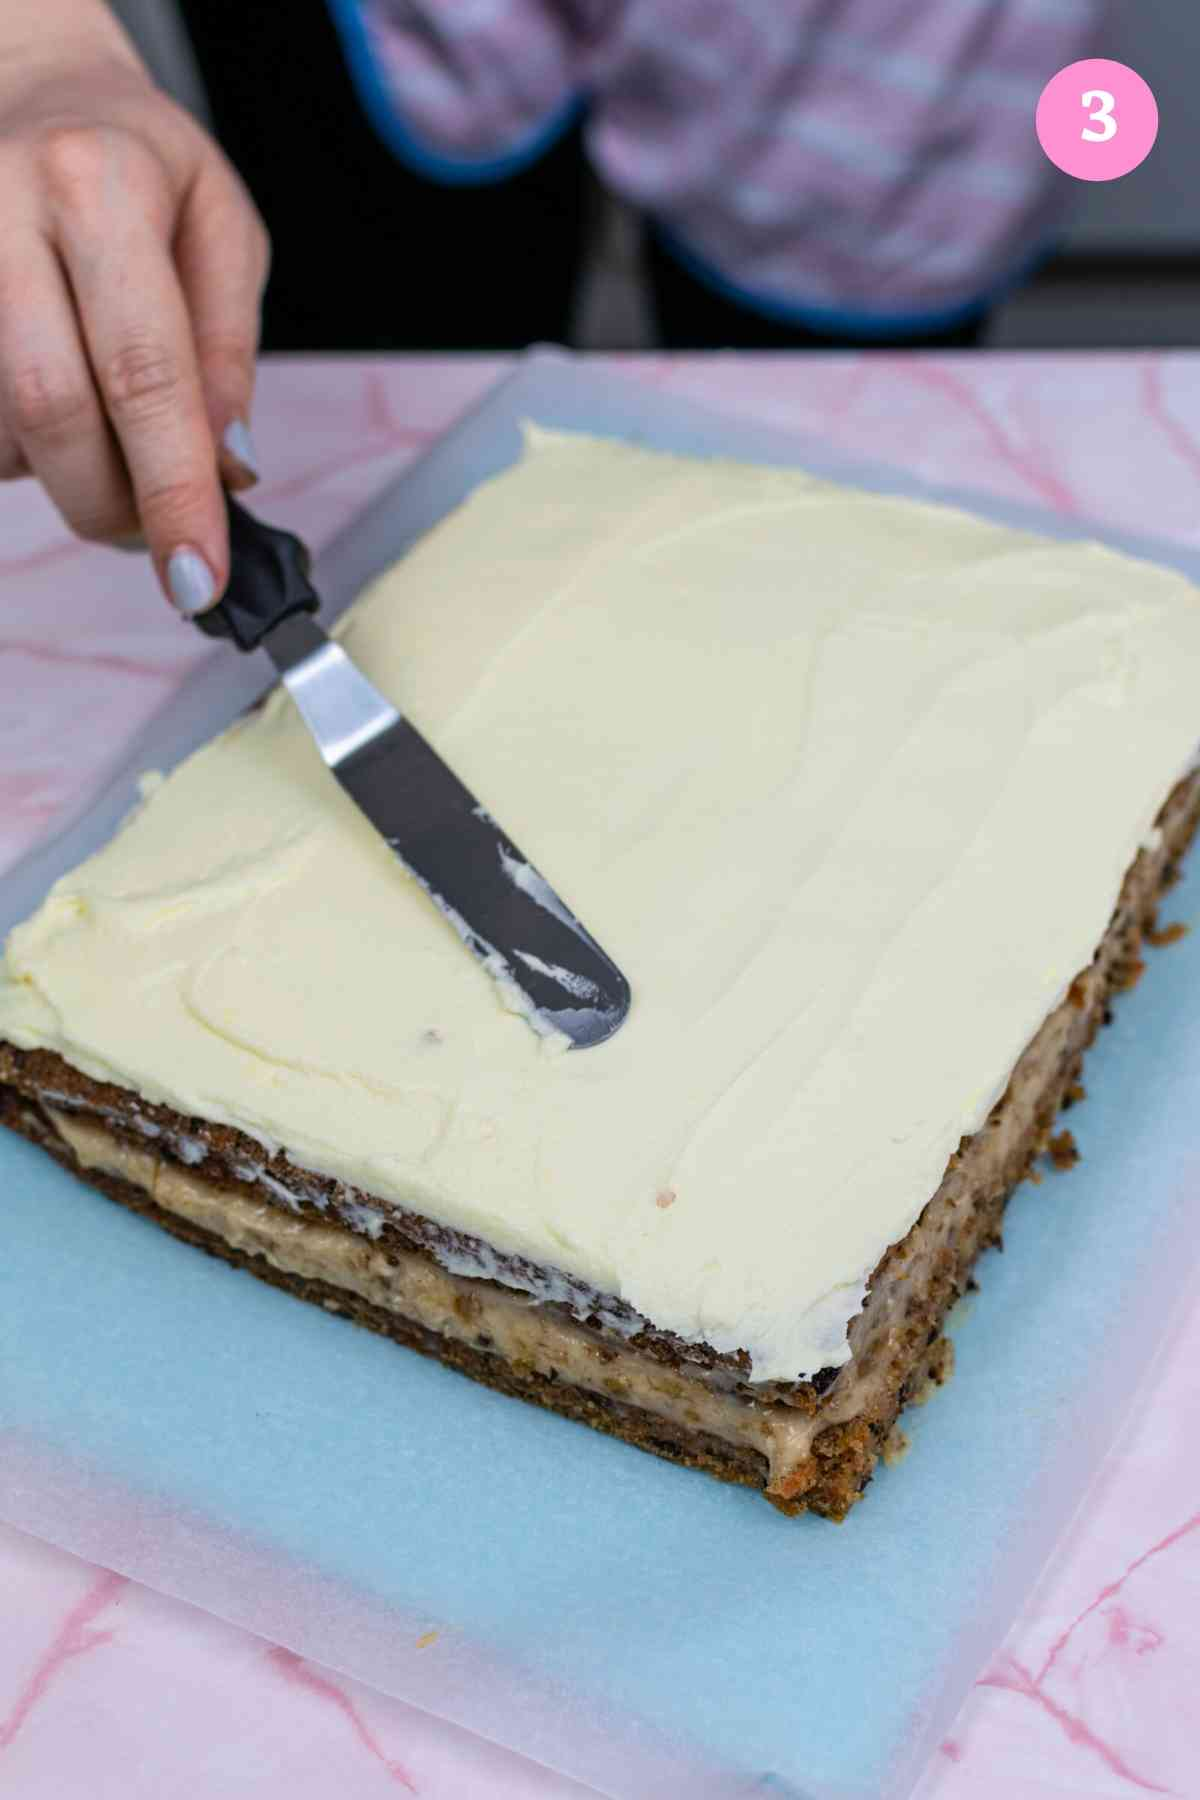 Spreading cream cheese frosting over the double layer carrot cake